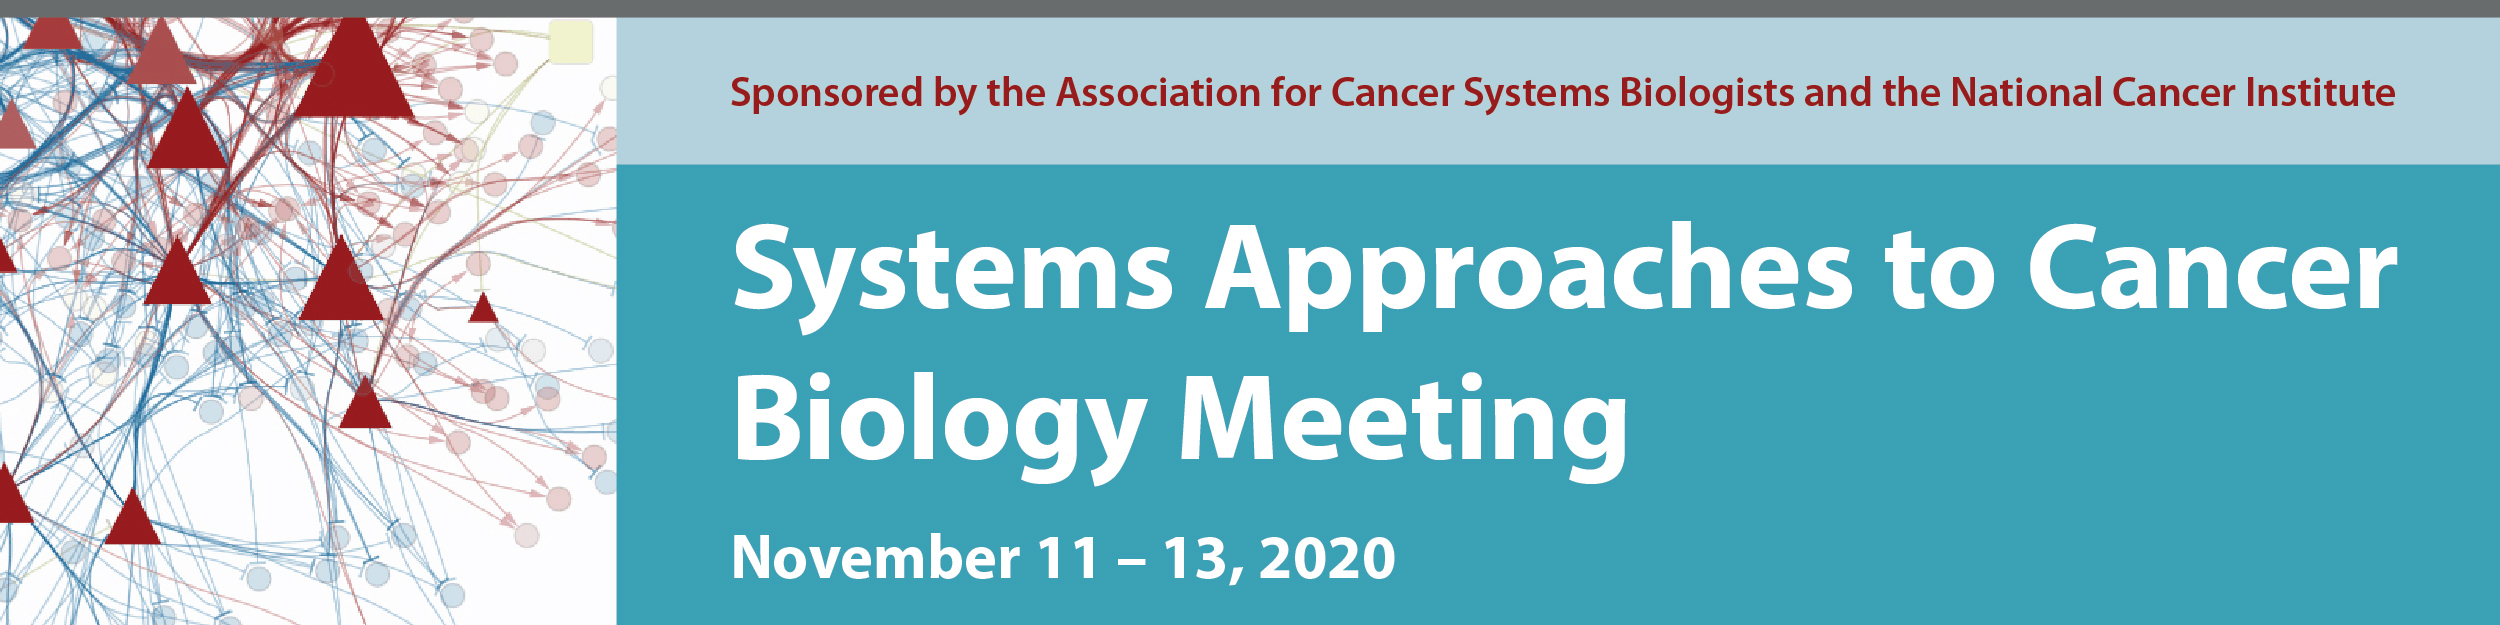 Systems Approaches to Cancer Biology